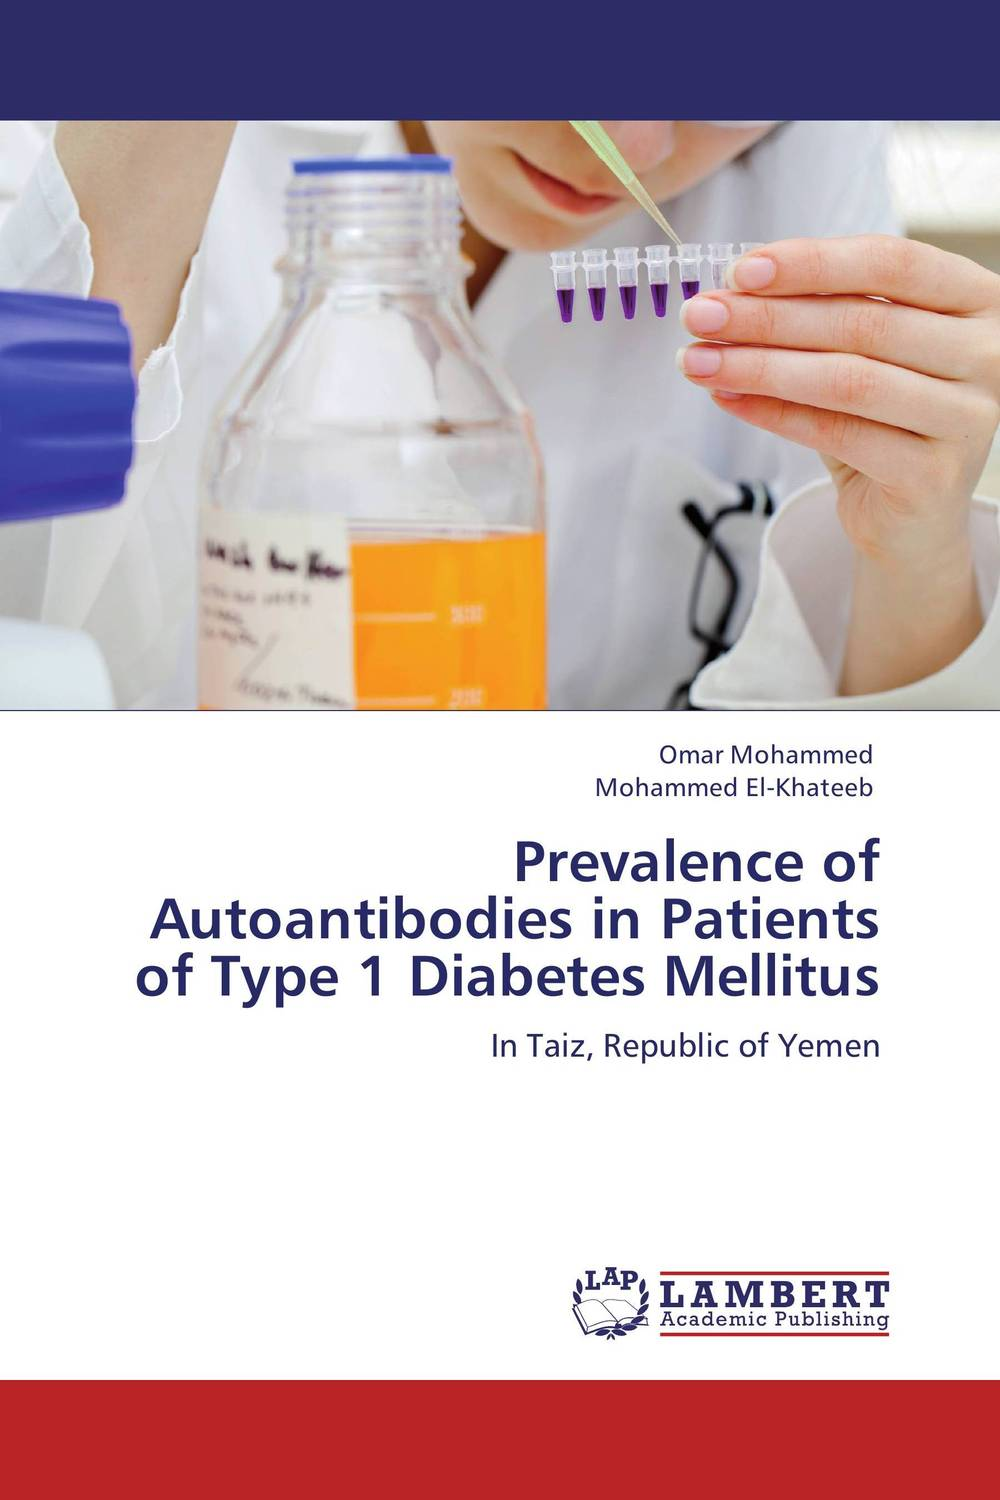 Prevalence of Autoantibodies in Patients of Type 1 Diabetes Mellitus prevalence of mtdna variations on the occurrence of diabetes mellitus